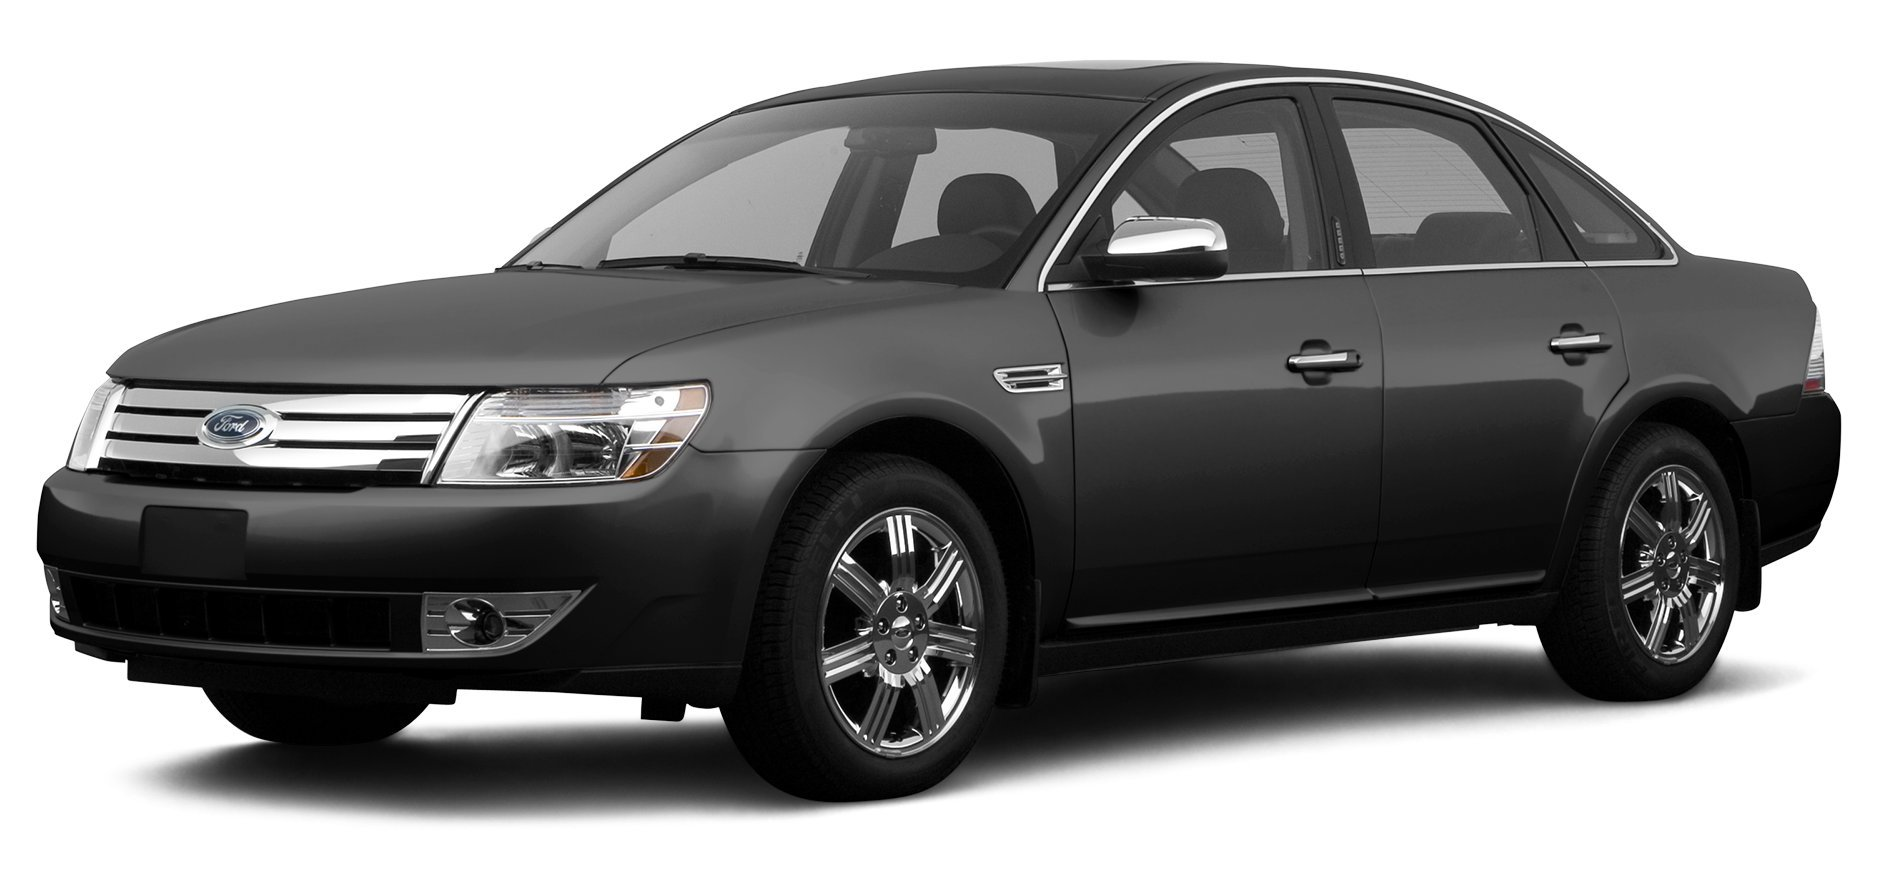 2008 ford taurus reviews images and specs. Black Bedroom Furniture Sets. Home Design Ideas